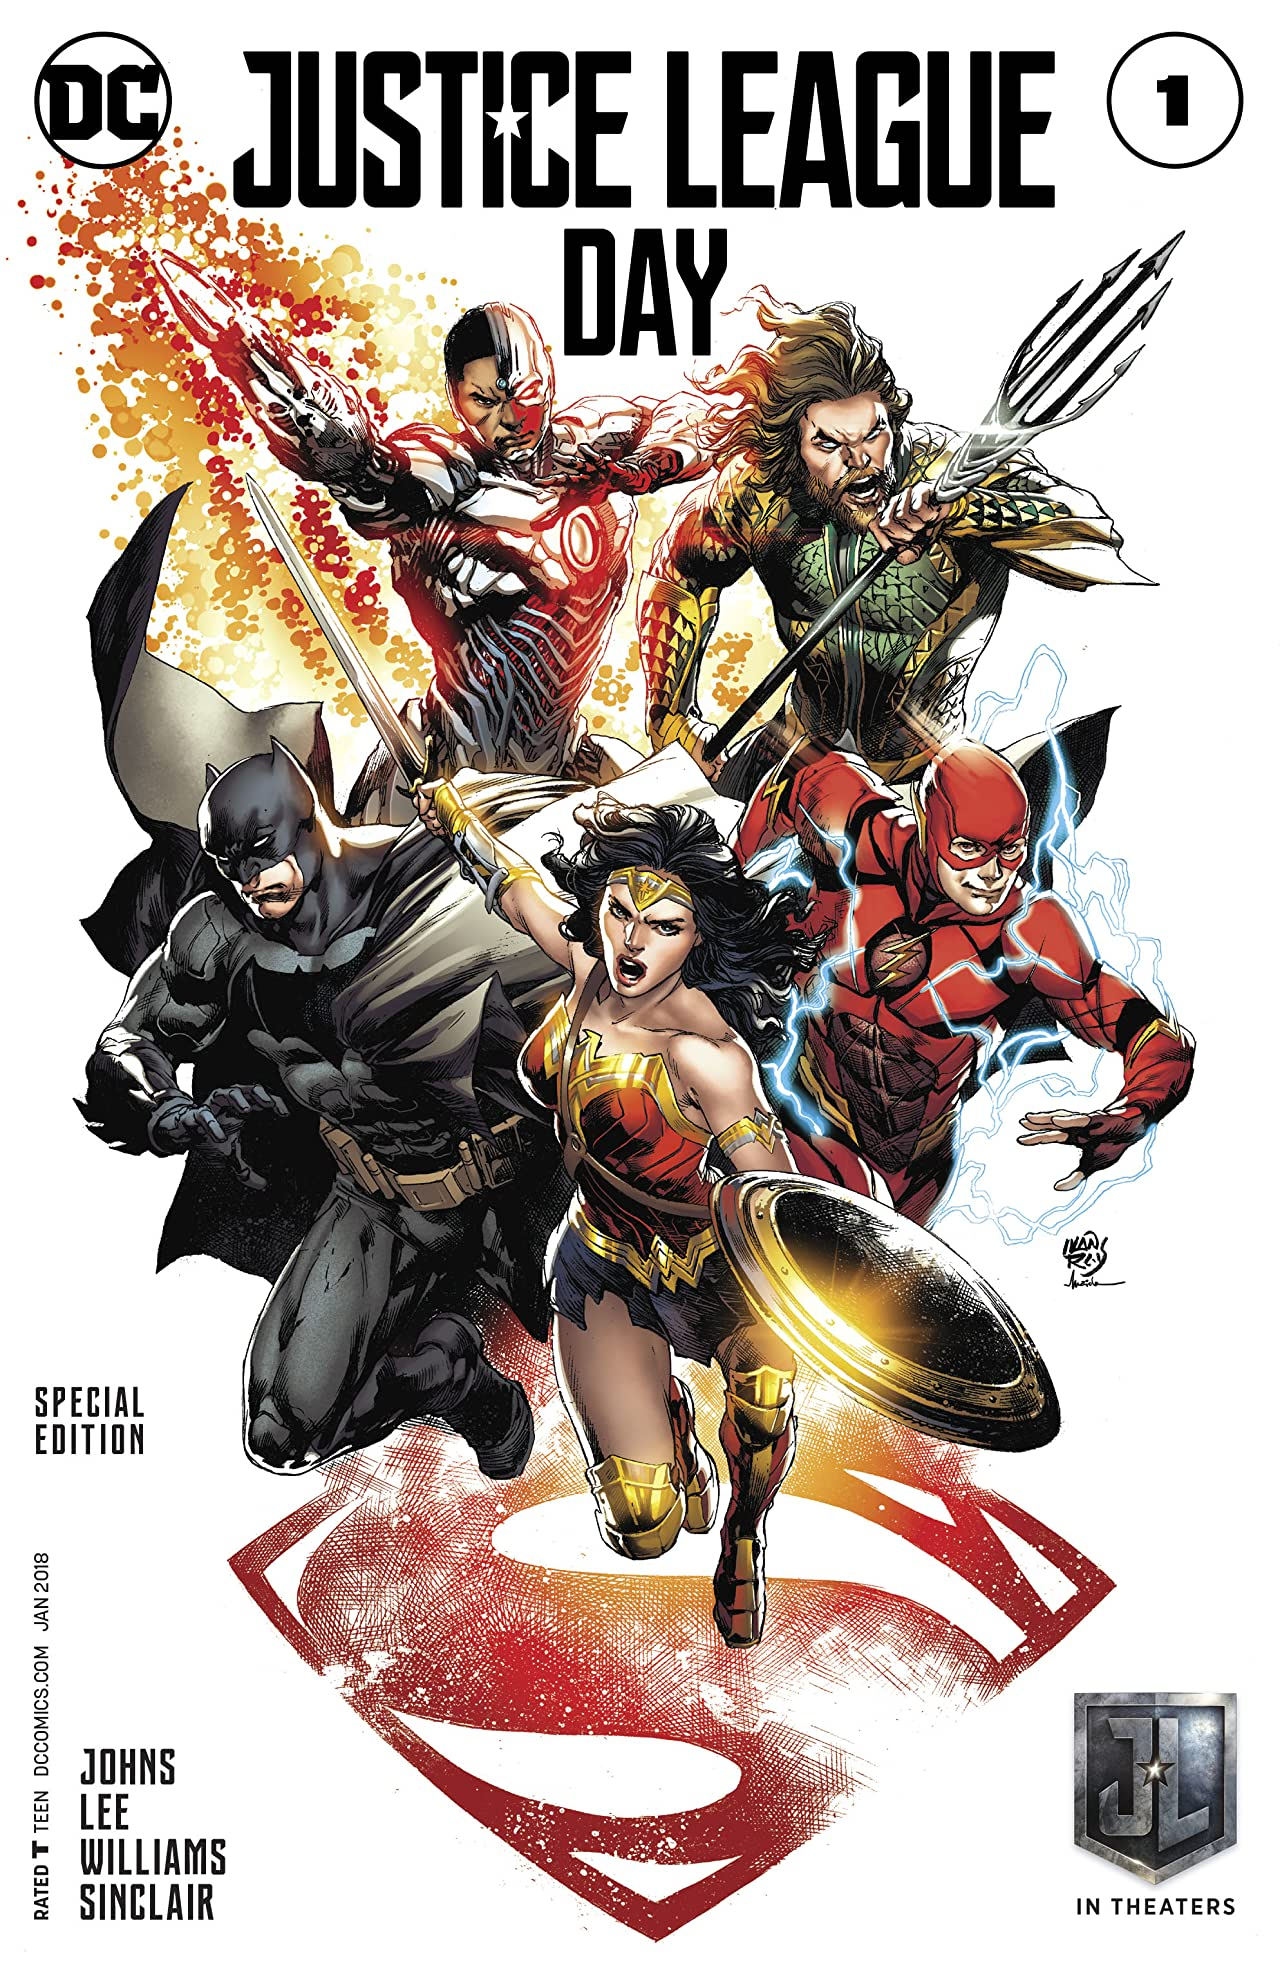 Justice League #1 - Justice League Day 2017 Special Edition